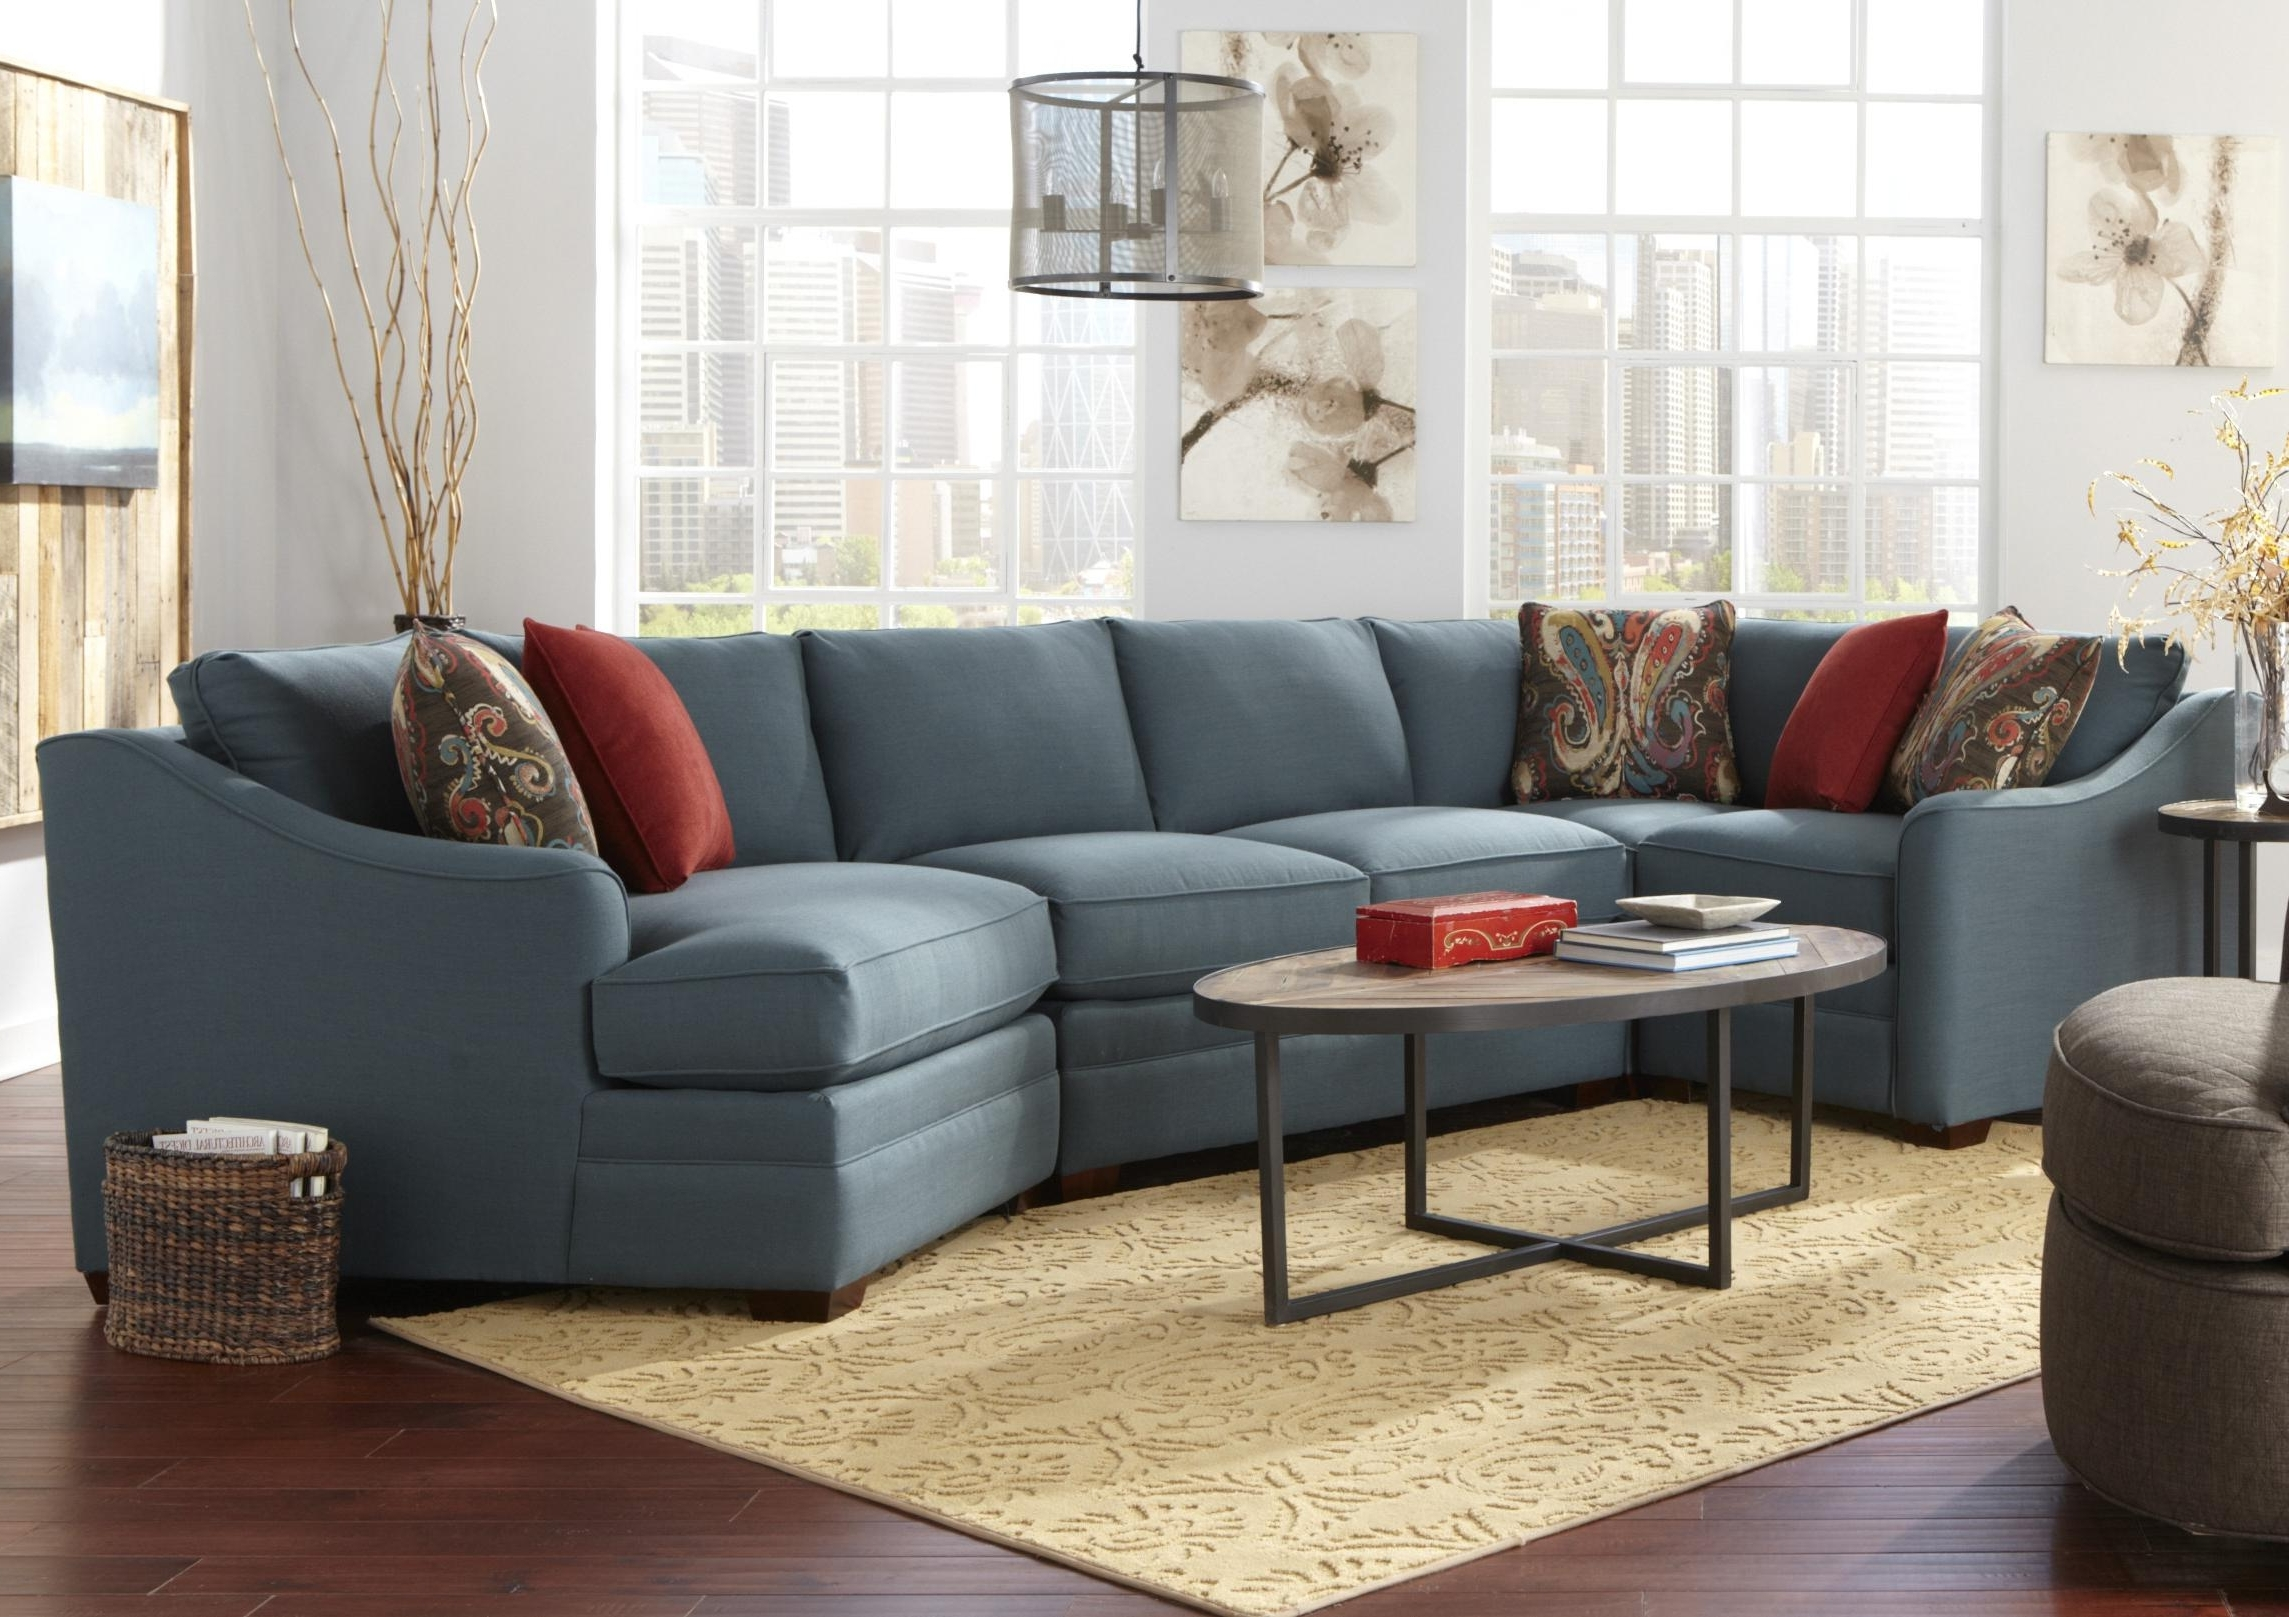 Four Piece <B>Customizable</b> Sectional Sofa With Raf Cuddler For Well Known Sectionals With Cuddler And Chaise (View 3 of 15)